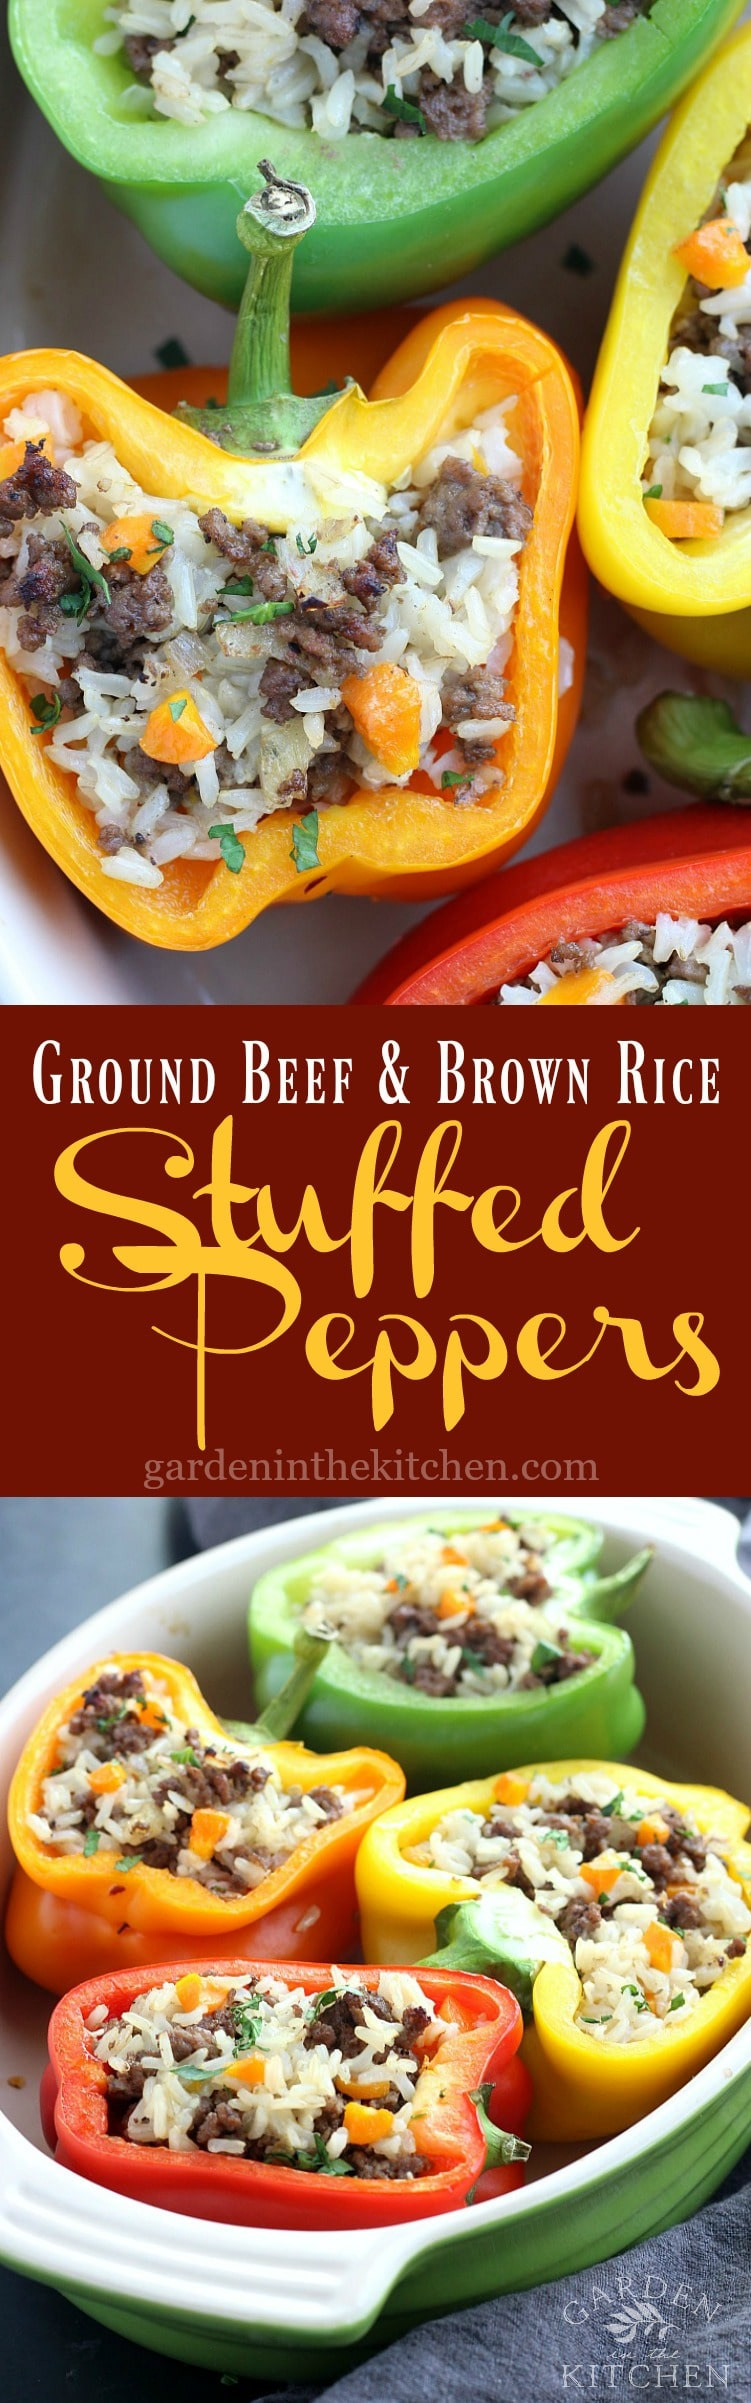 Ground Beef & Brown Rice Stuffed Peppers